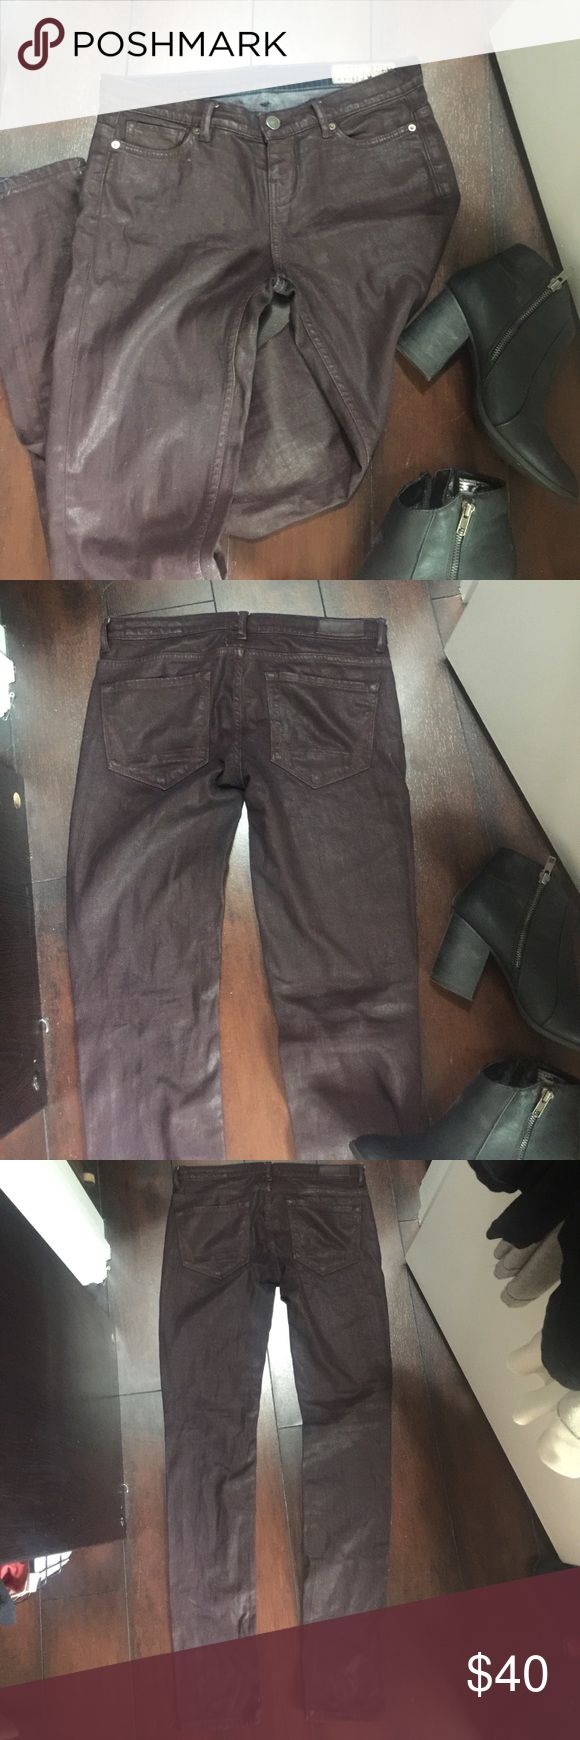 BADASS WAX OXBLOOD JEAN Reposhing these awesome jeans because they are a little too tight. All saints runs small. These don't have any stretch. Sad to let them go! Skinny and waxed. Tag says 28 but listing as 26 since they run small and fit more like a 26 All Saints Jeans Skinny